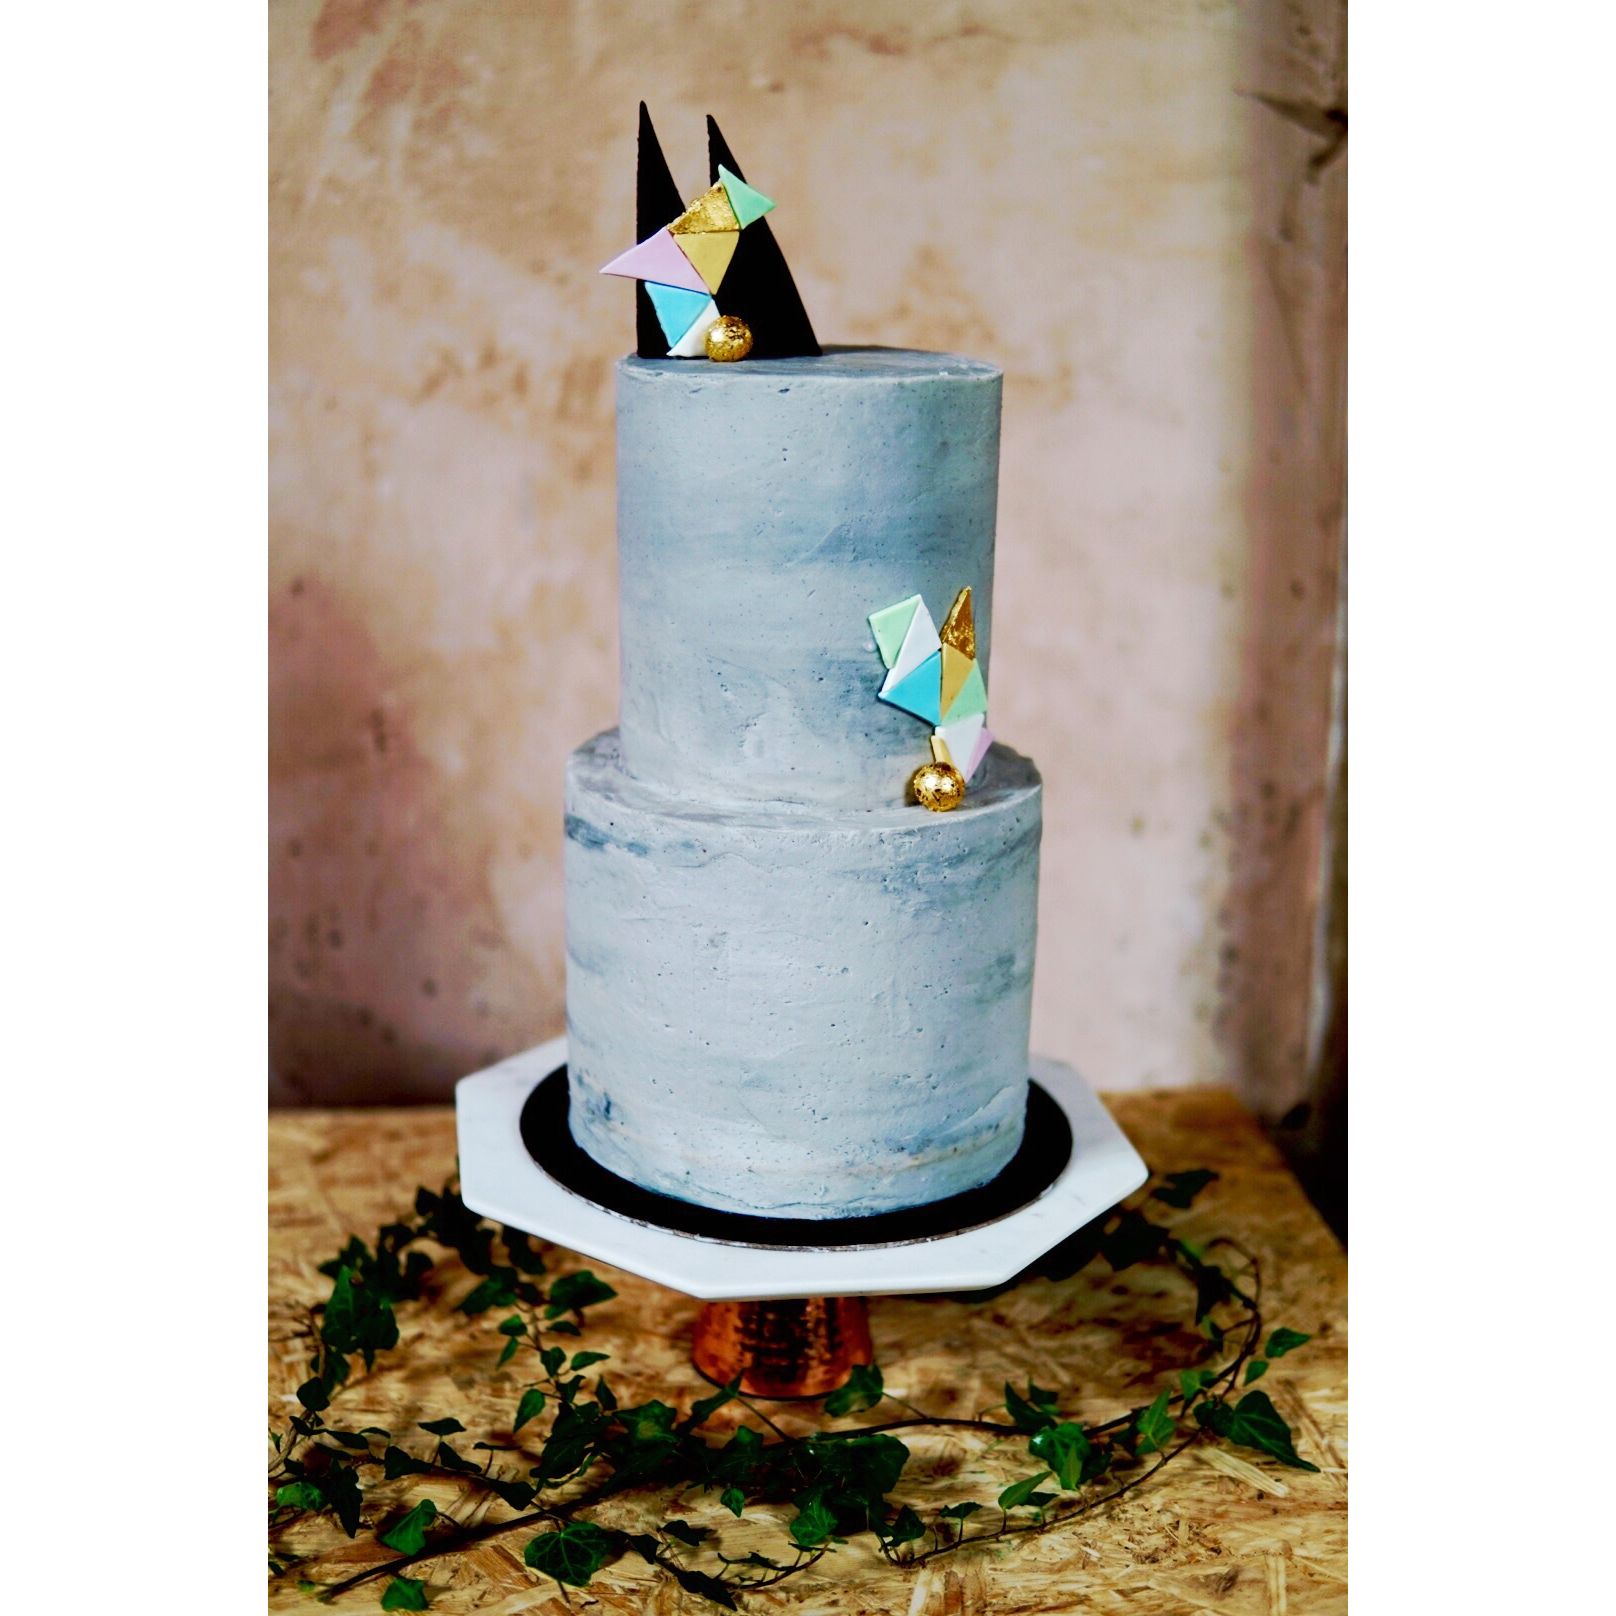 Pin cara menghias kue cake decorating cake on pinterest - Geometric Grey Concrete Wedding Cake